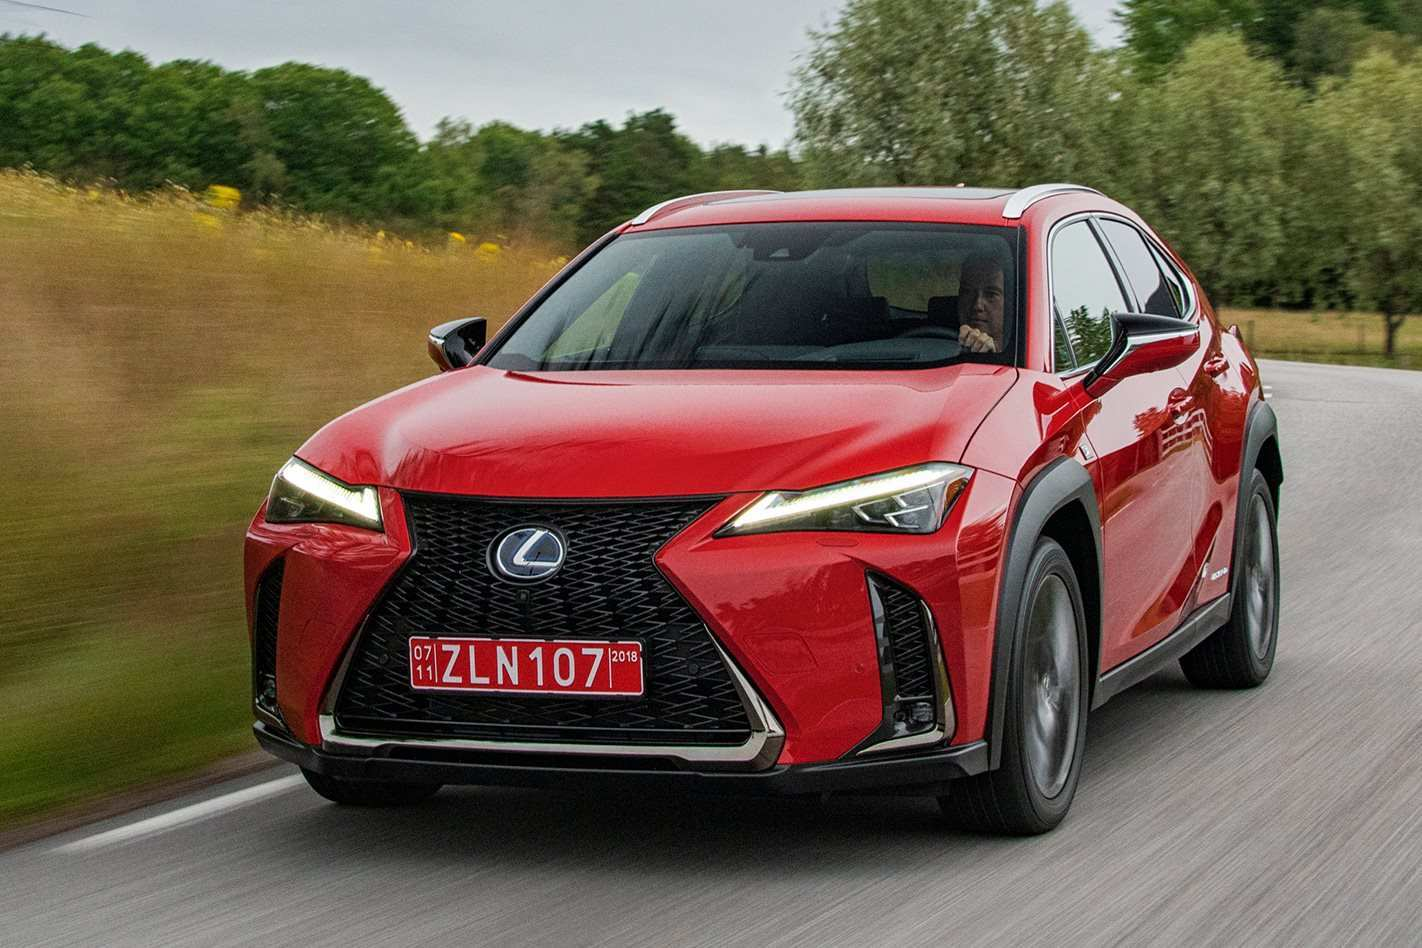 56 All New Lexus Ux 2019 Price Price Design And Review